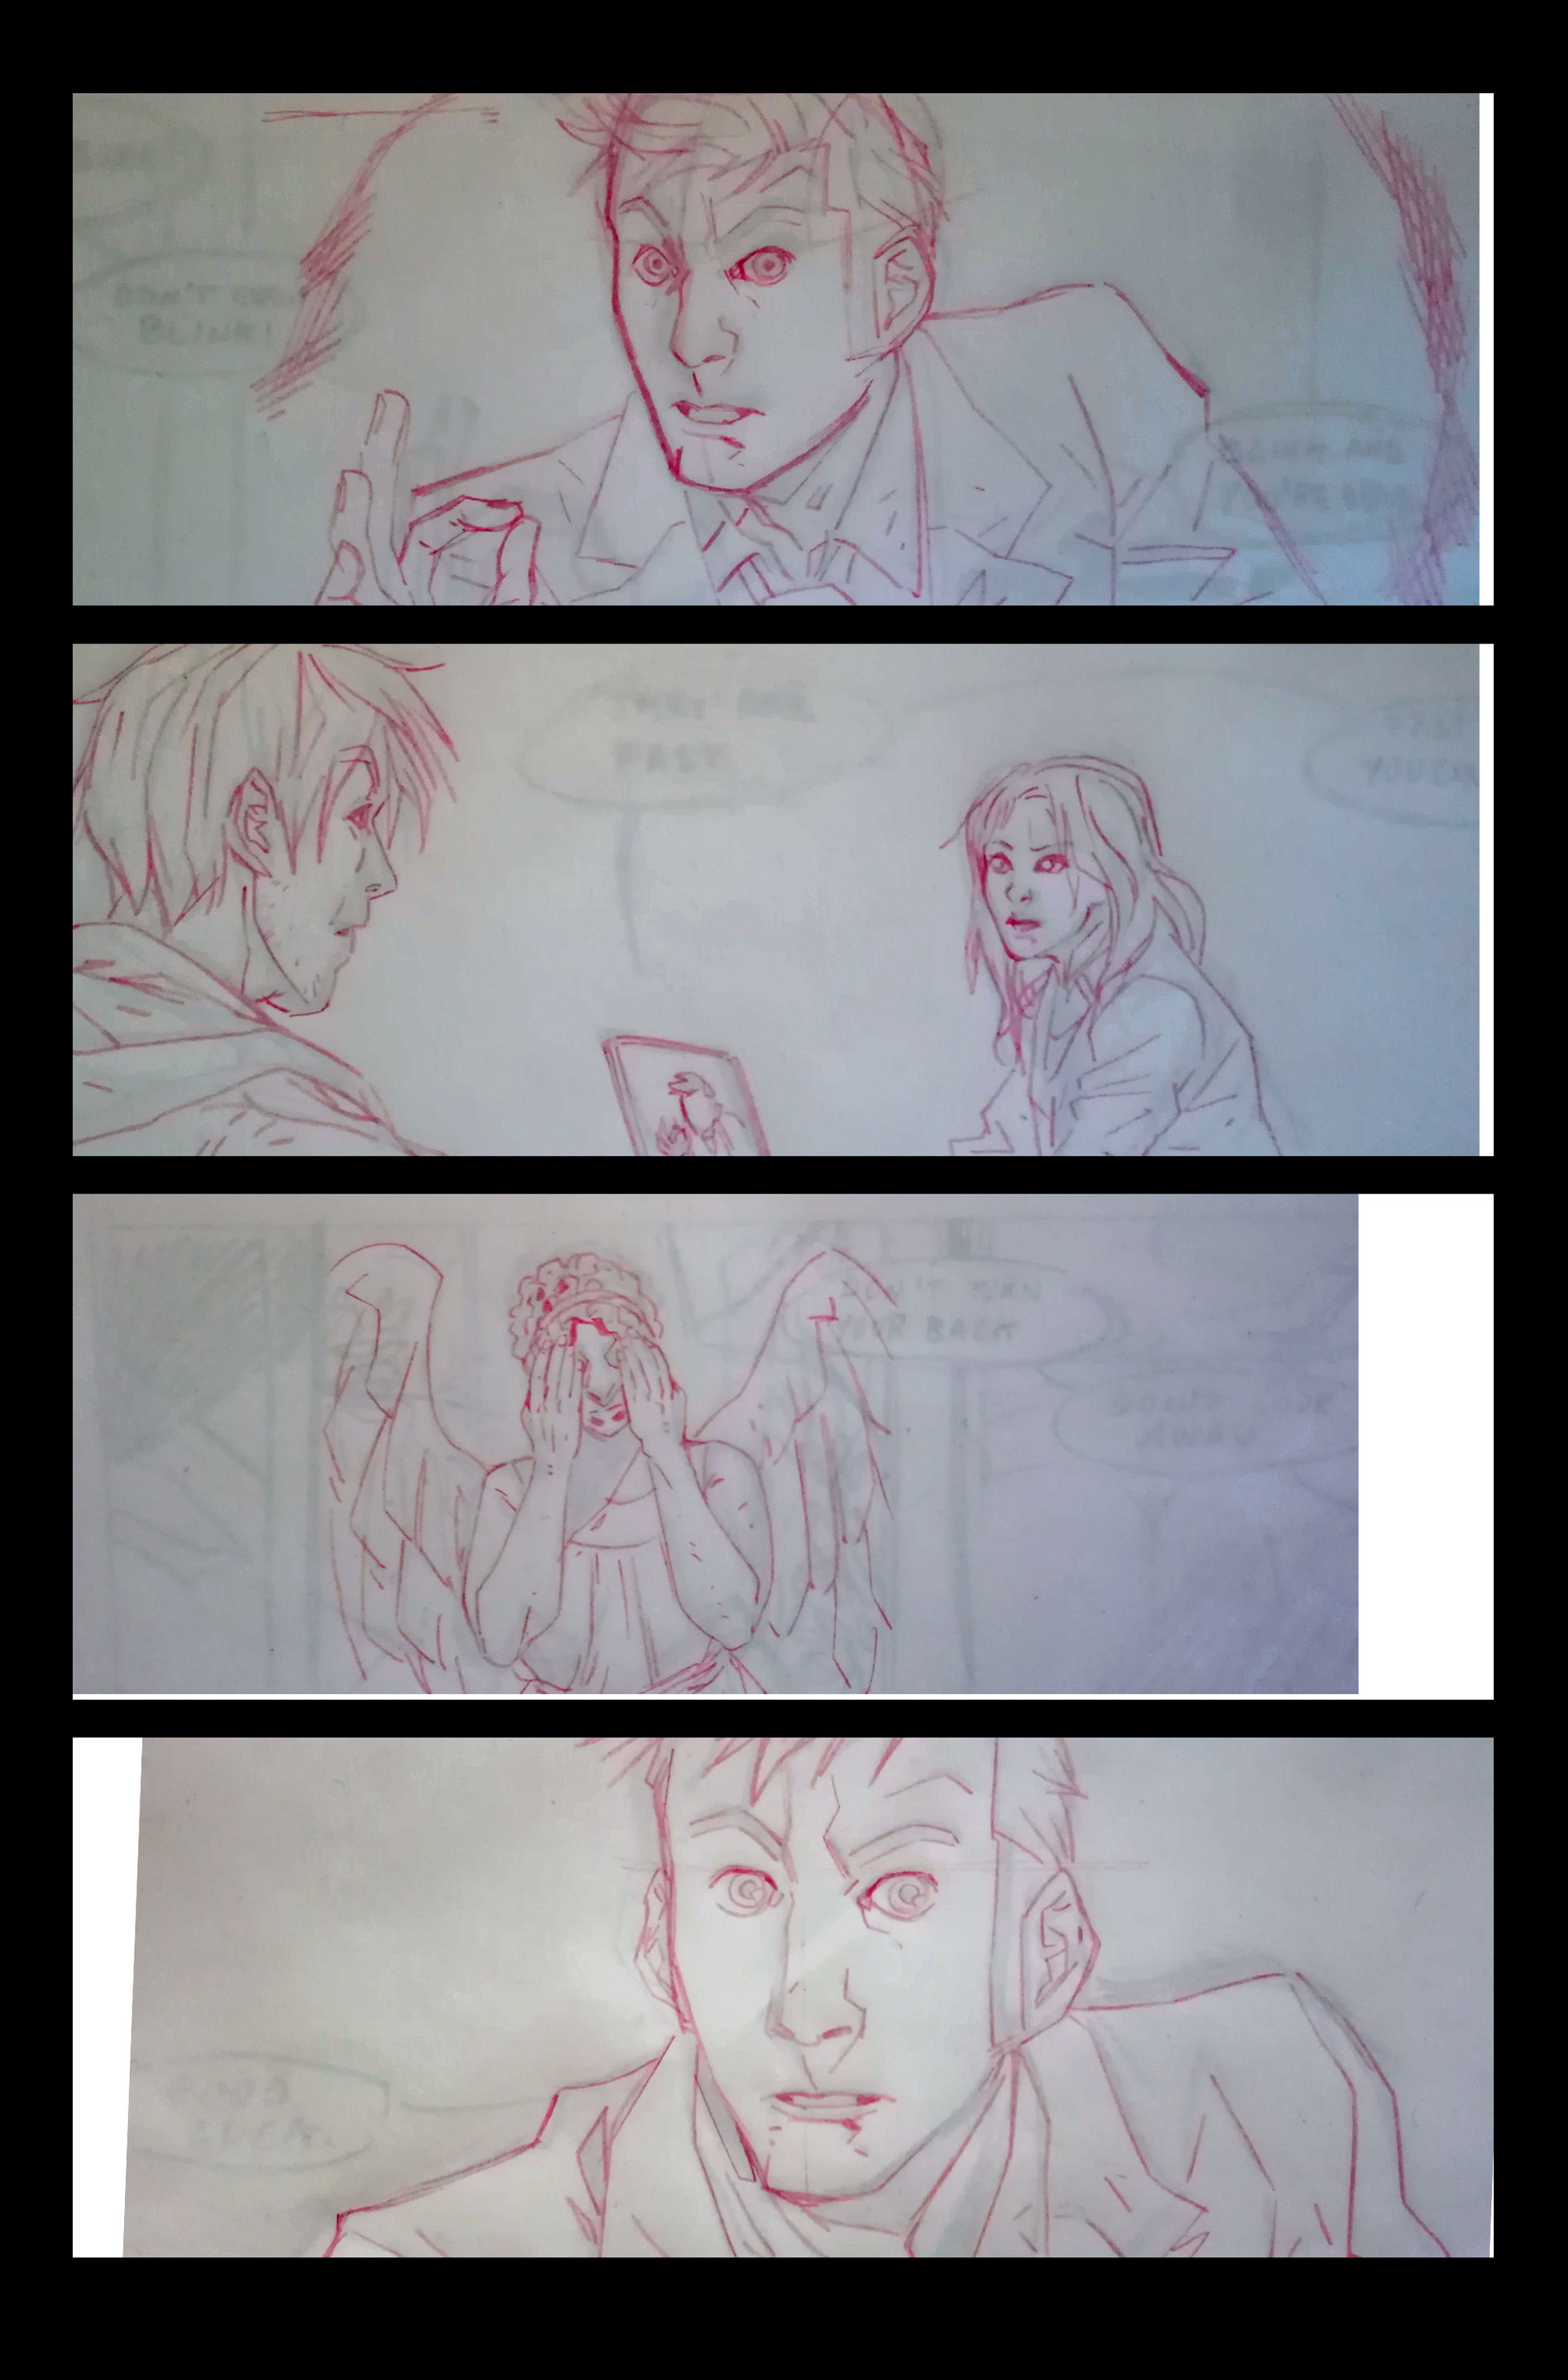 Claudia cocci doctor who page 01 wip0